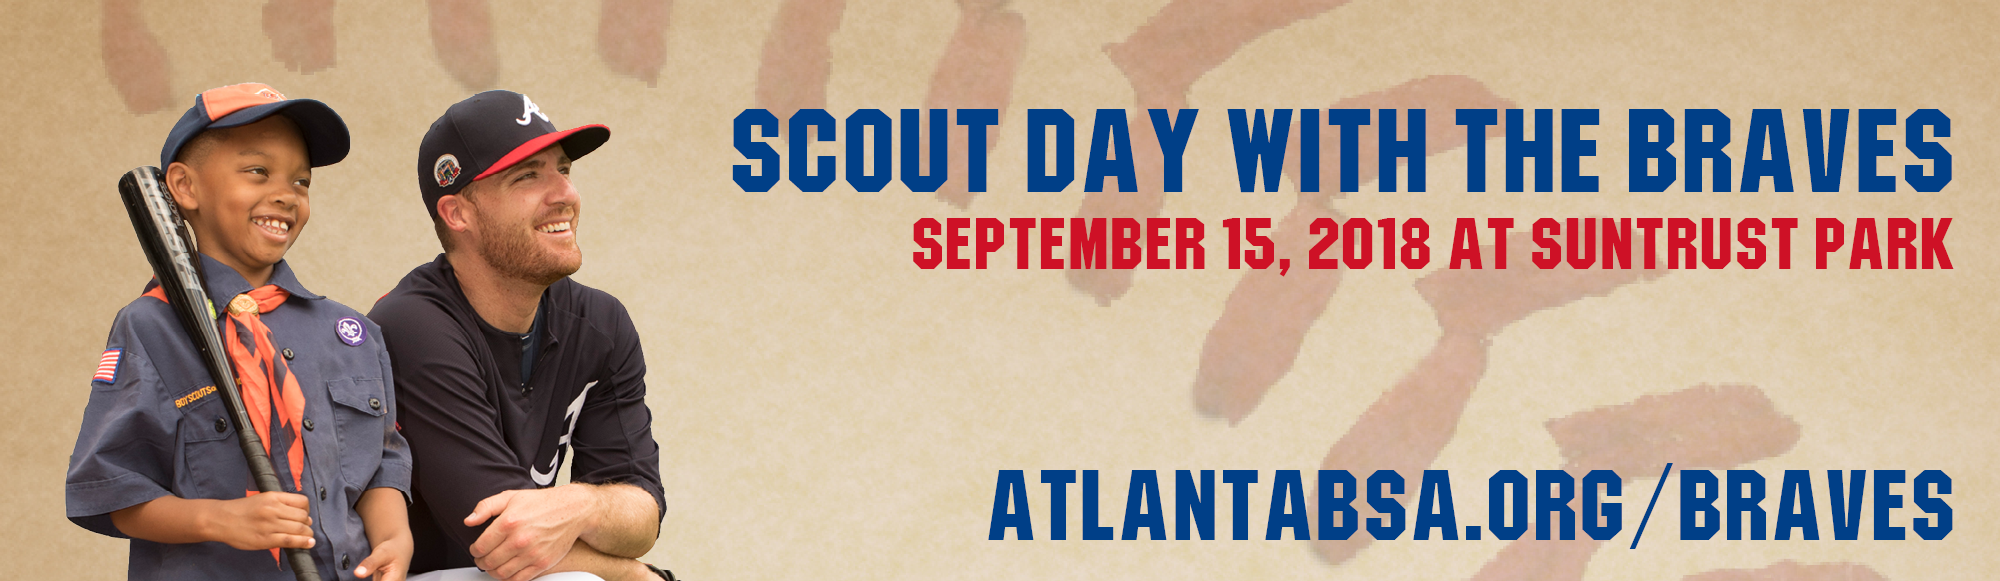 Scout Day with the Braves on September 15